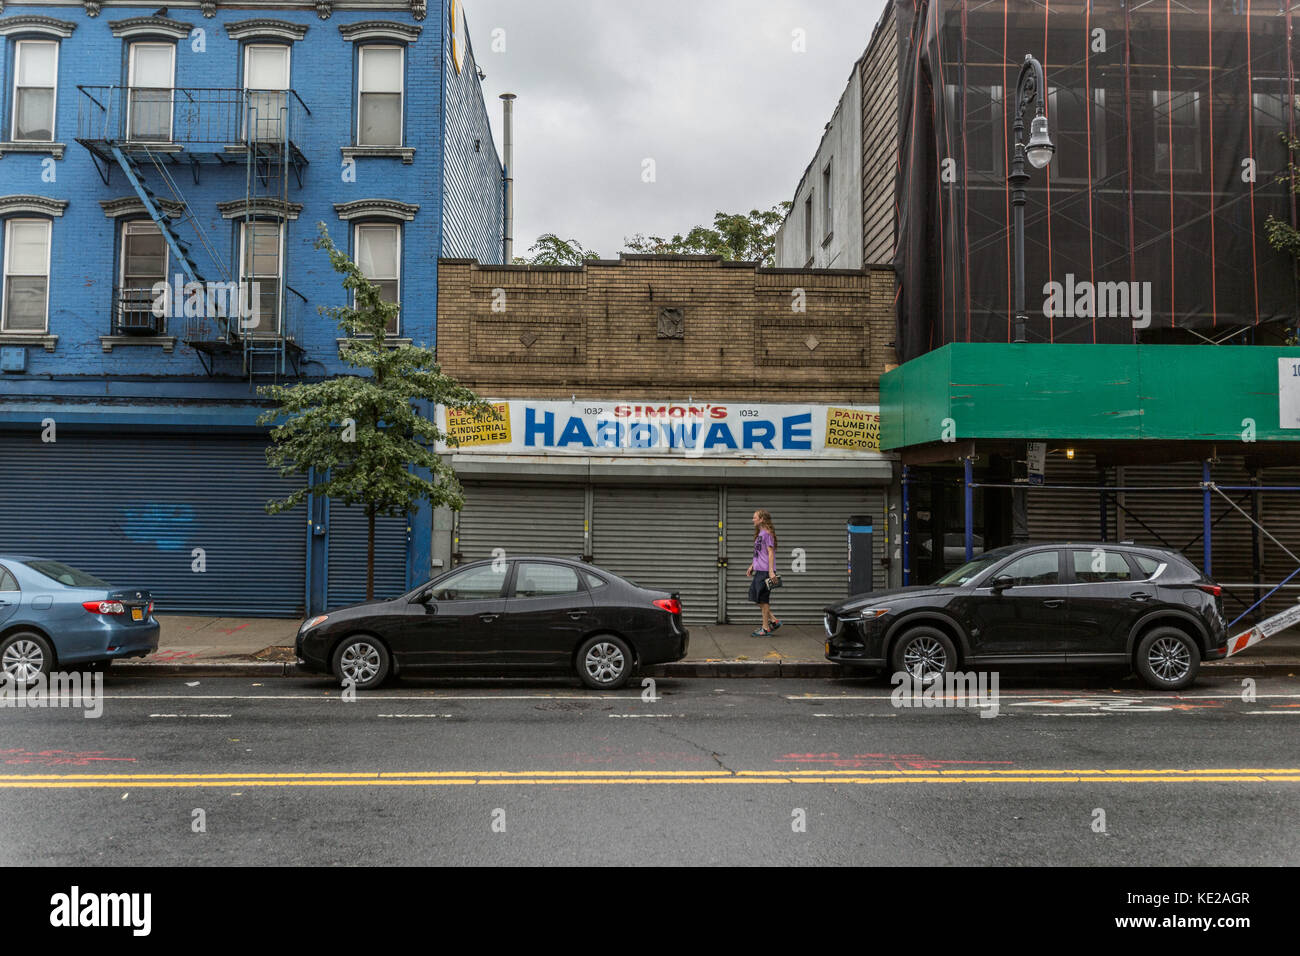 View of buildings on Manhattan Avenue, Greenpoint, Brooklyn, NY. - Stock Image